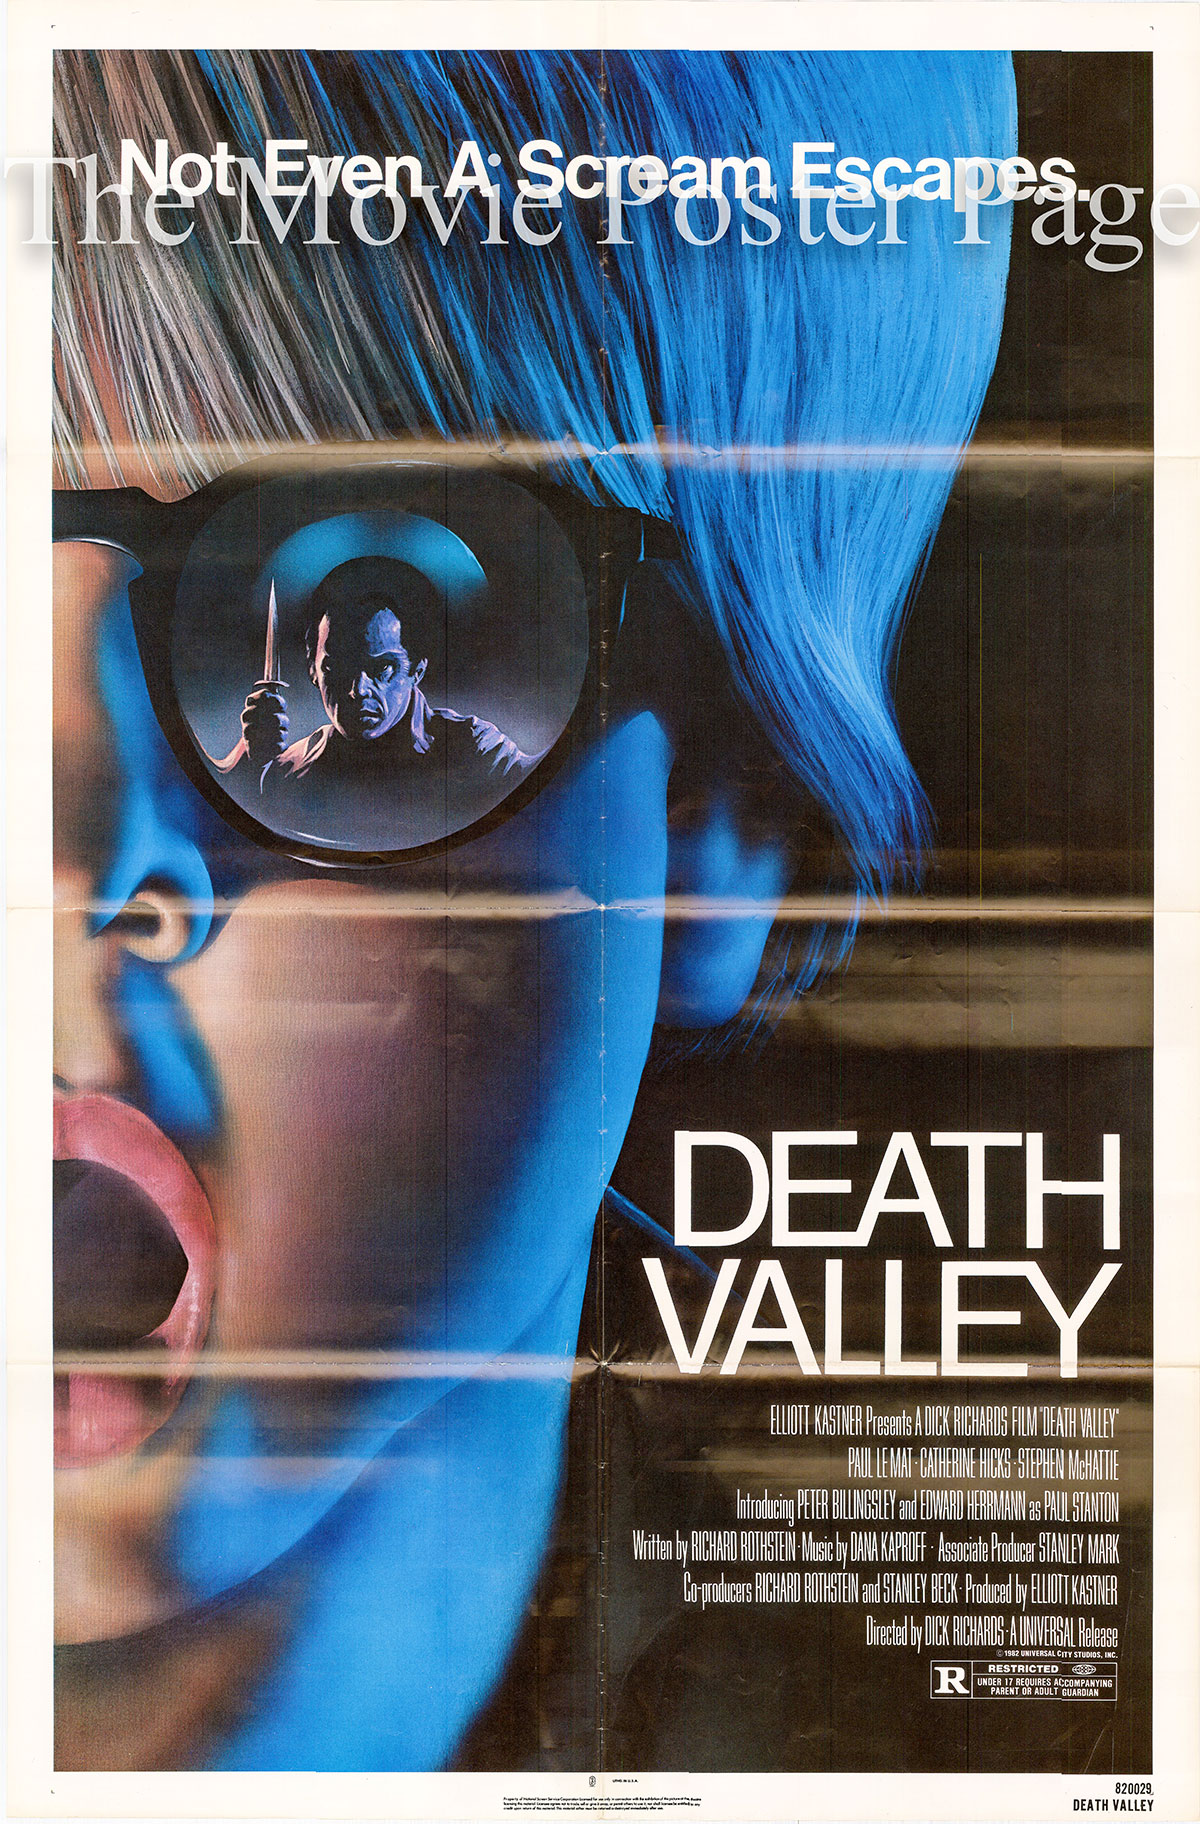 Pictured is a US one-sheet poster for the 1978 Dick Richards film Death Valley starring Paul Le Mat as Mike.